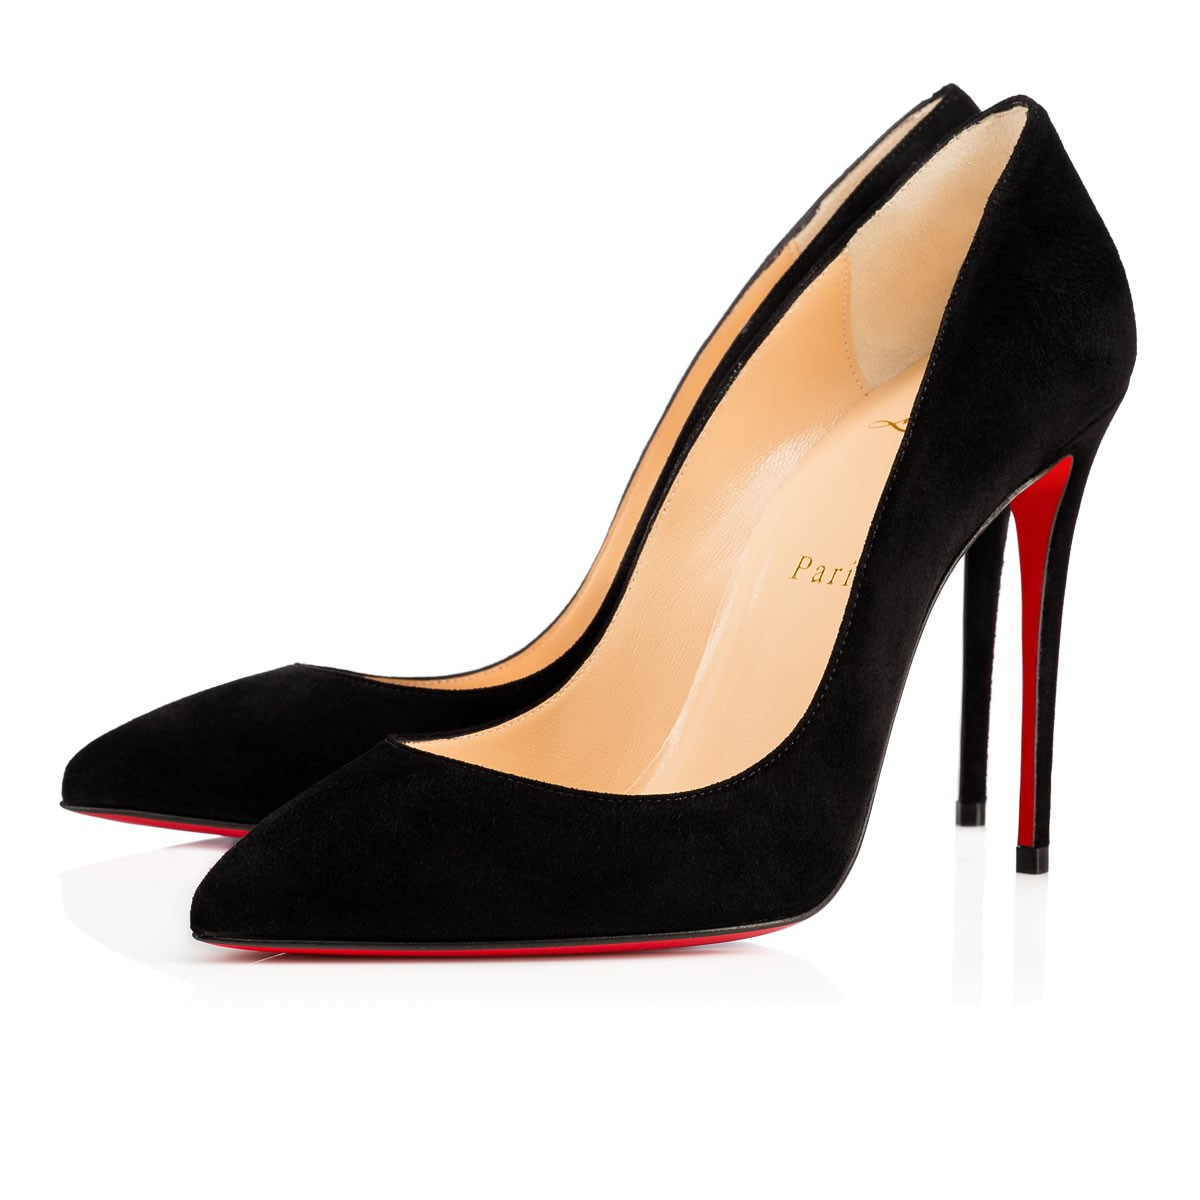 51ccd6f381bd Pigalle Follies 100 Black Suede - Women Shoes - Christian Louboutin